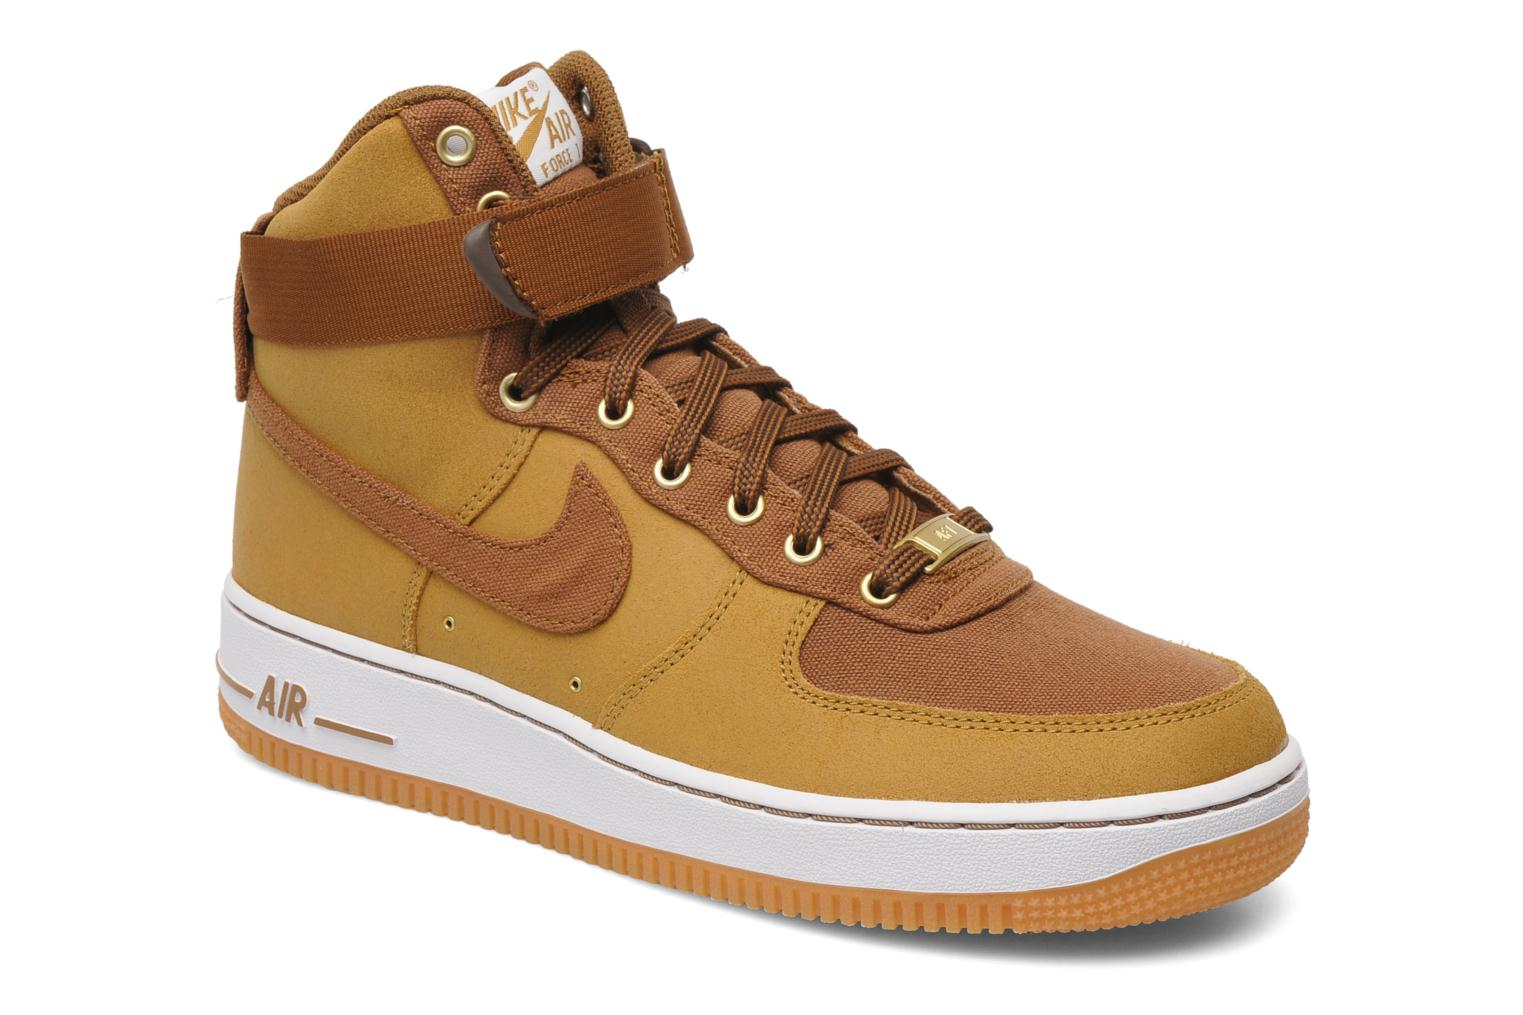 nike air force 1 high 39 07 ww trainers in brown at 182084. Black Bedroom Furniture Sets. Home Design Ideas